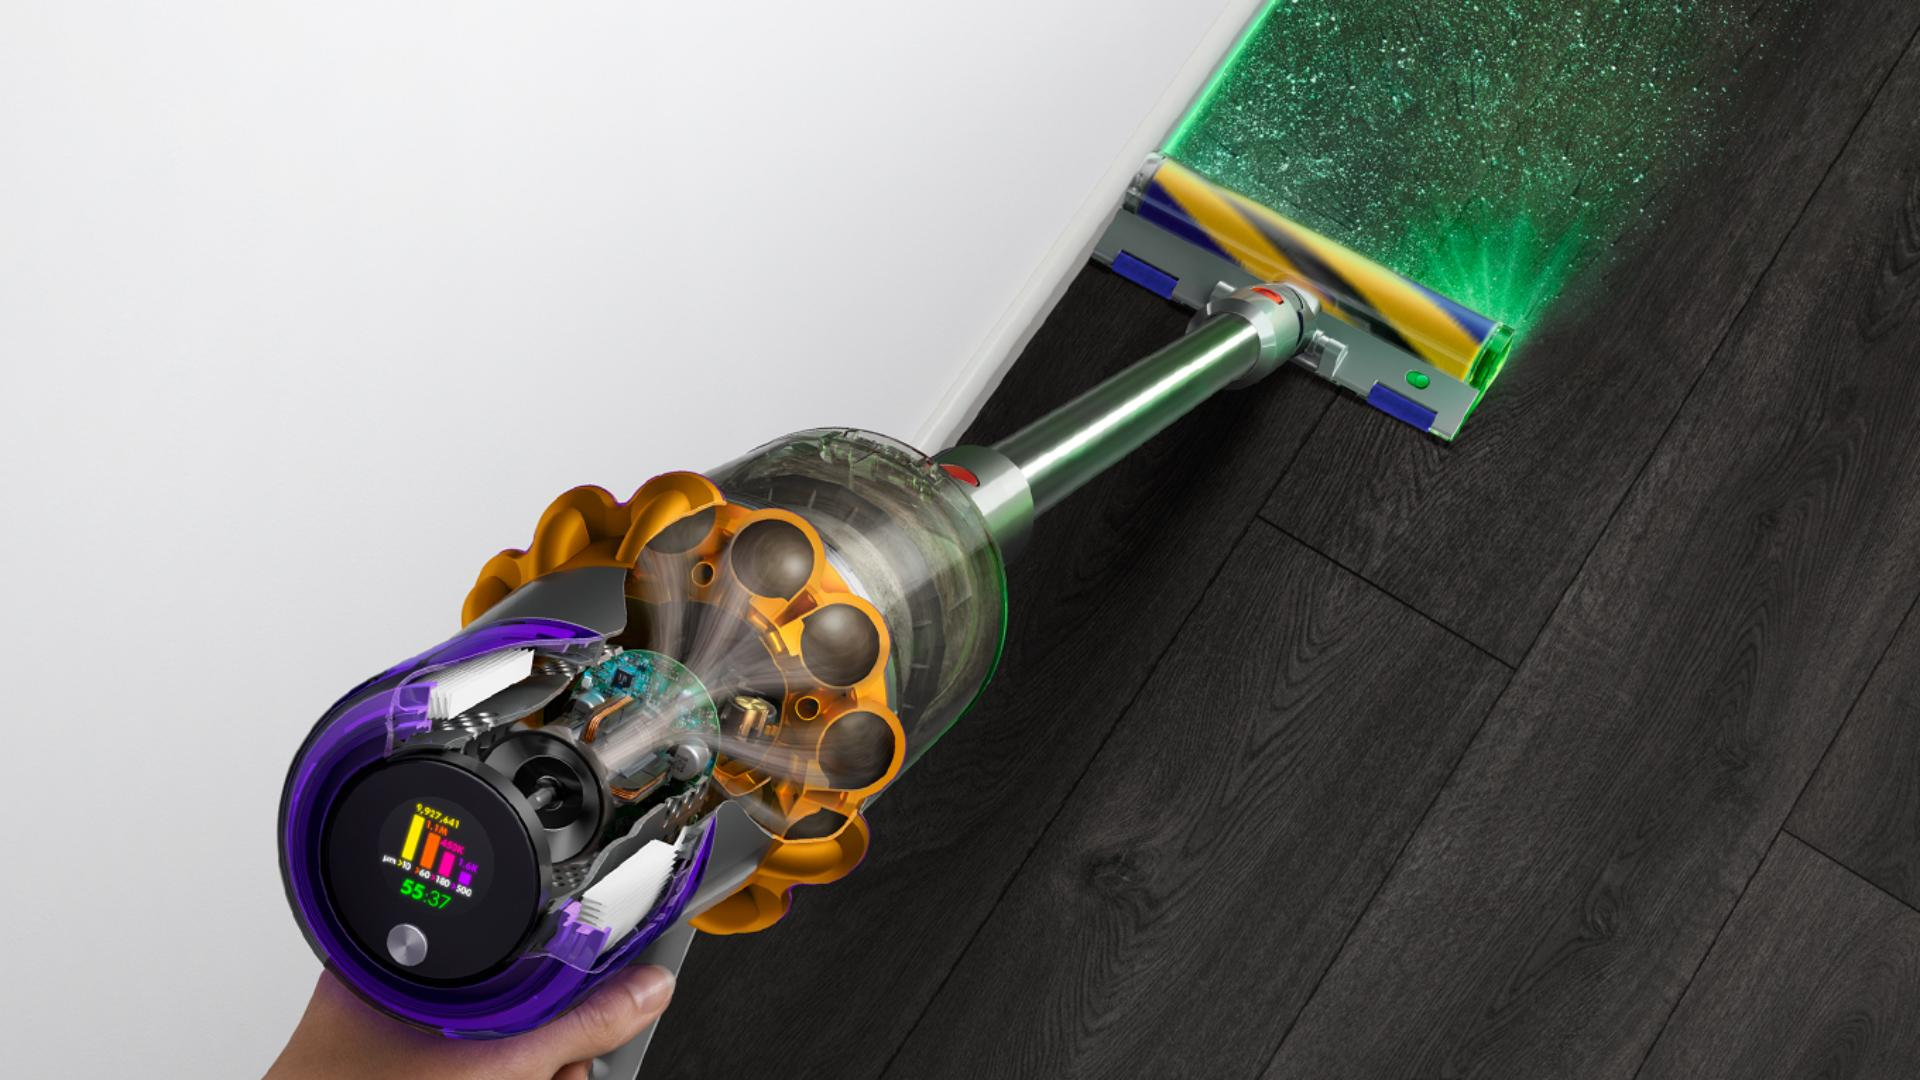 Dyson V15 Detect revealing invisible dust on floor